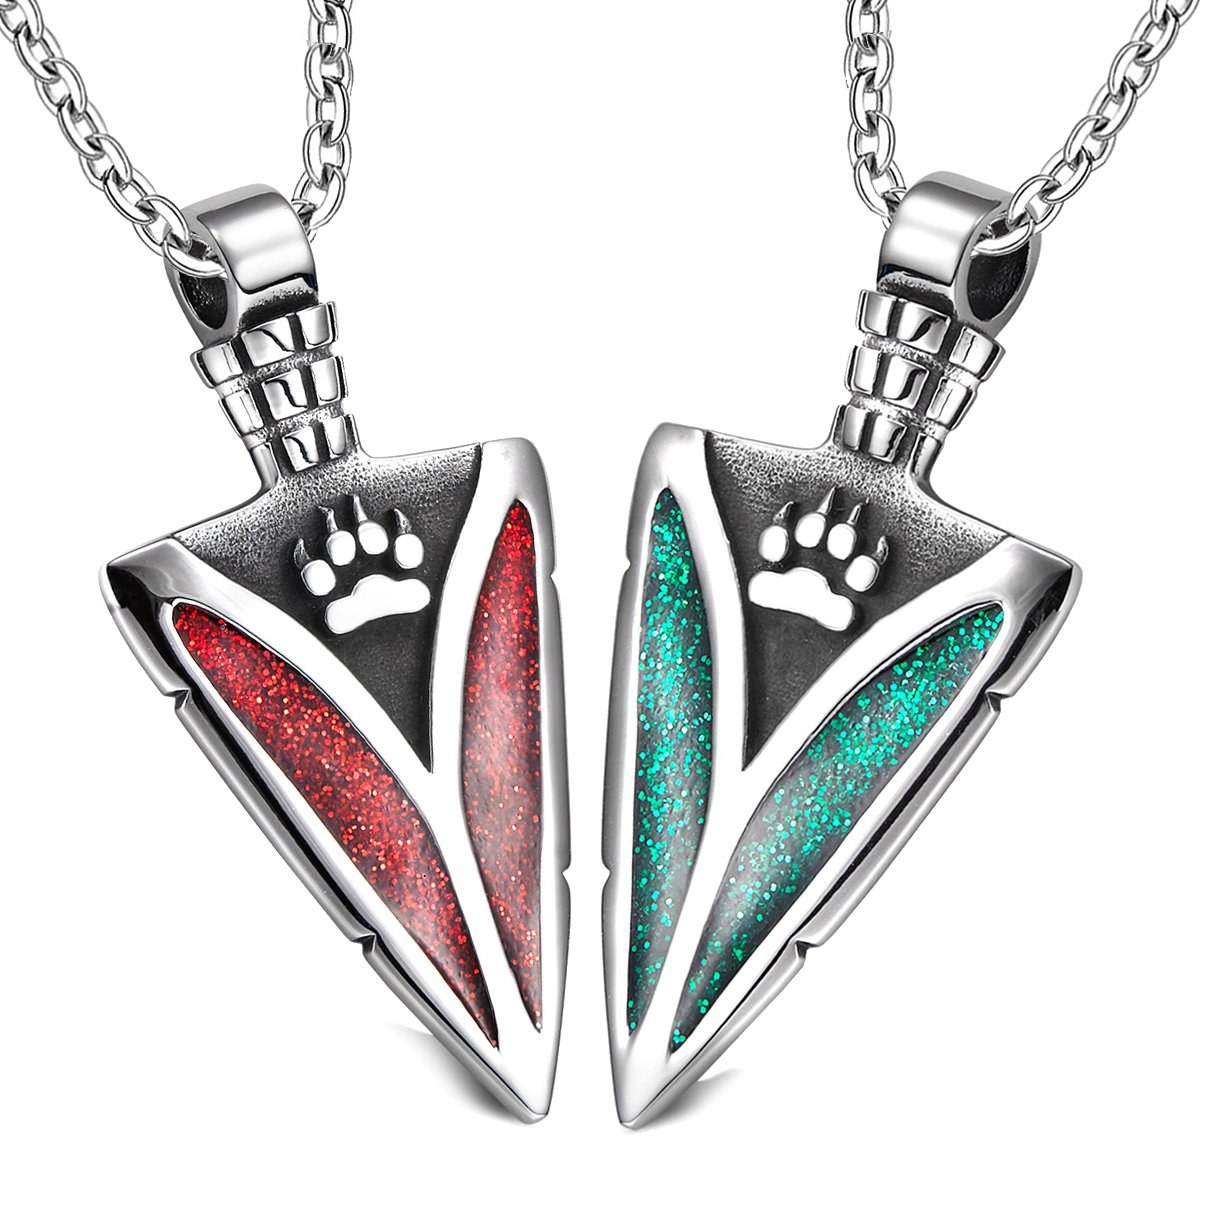 Arrowhead Wild Wolf Paw Love Couples or BFF Set Protection Amulets Sparkling Royal Green Red Necklaces